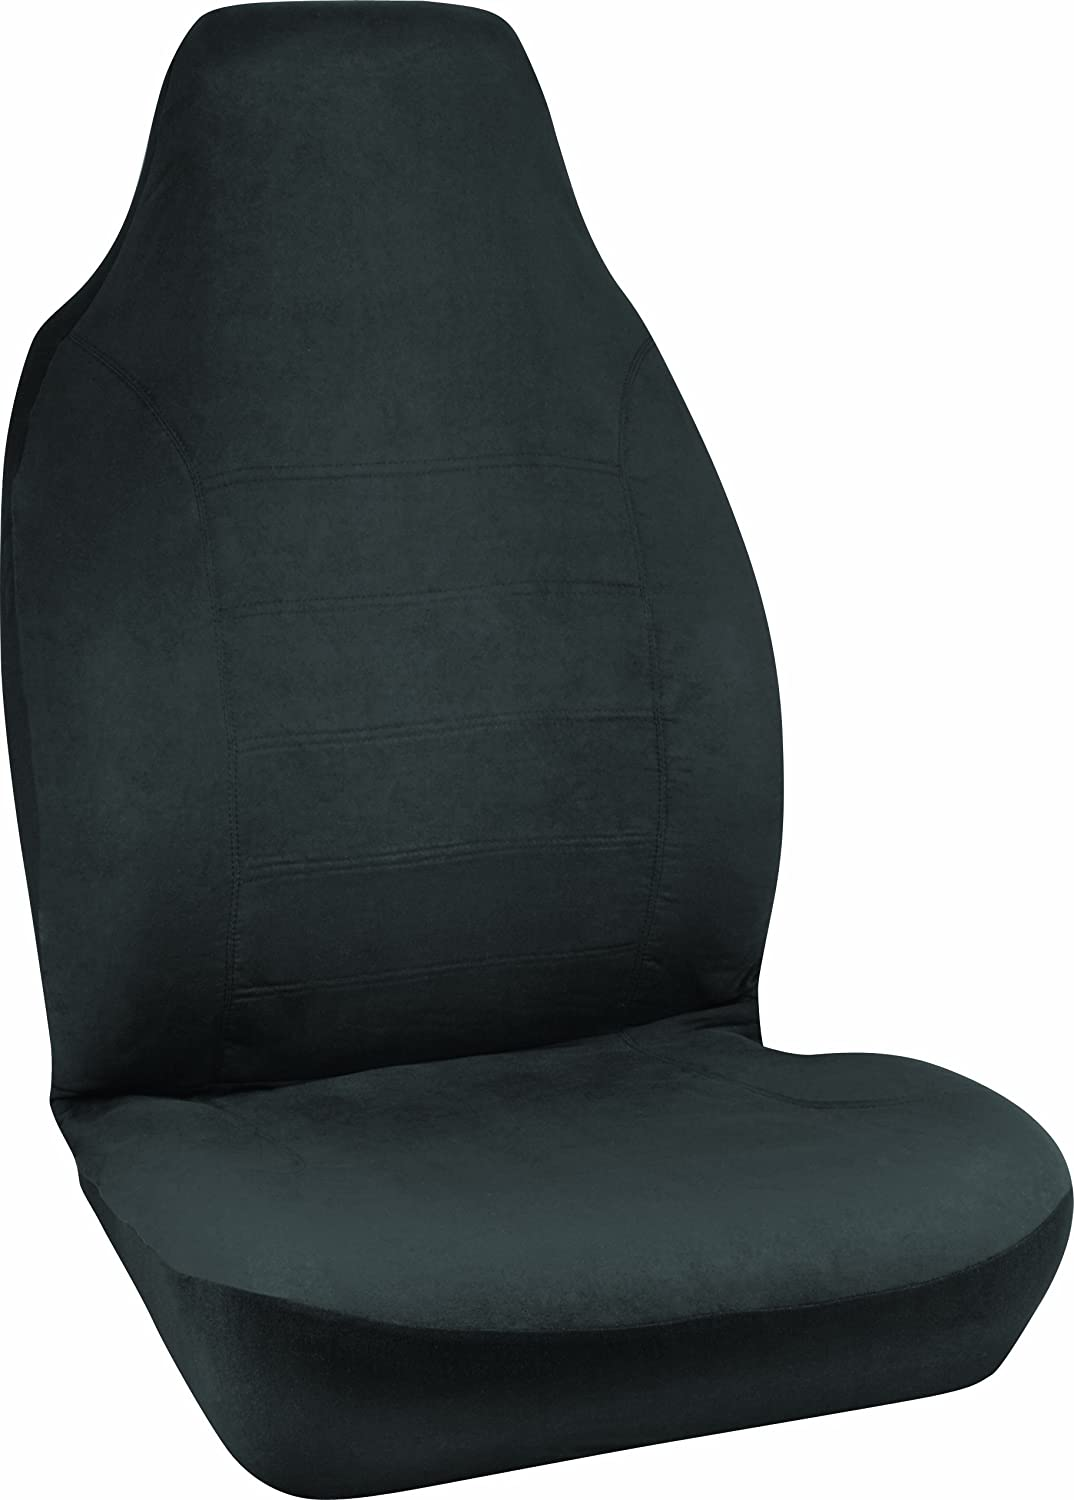 Bell Automotive 22-1-56225-8 Black Micro Suede Universal Bucket Seat Cover